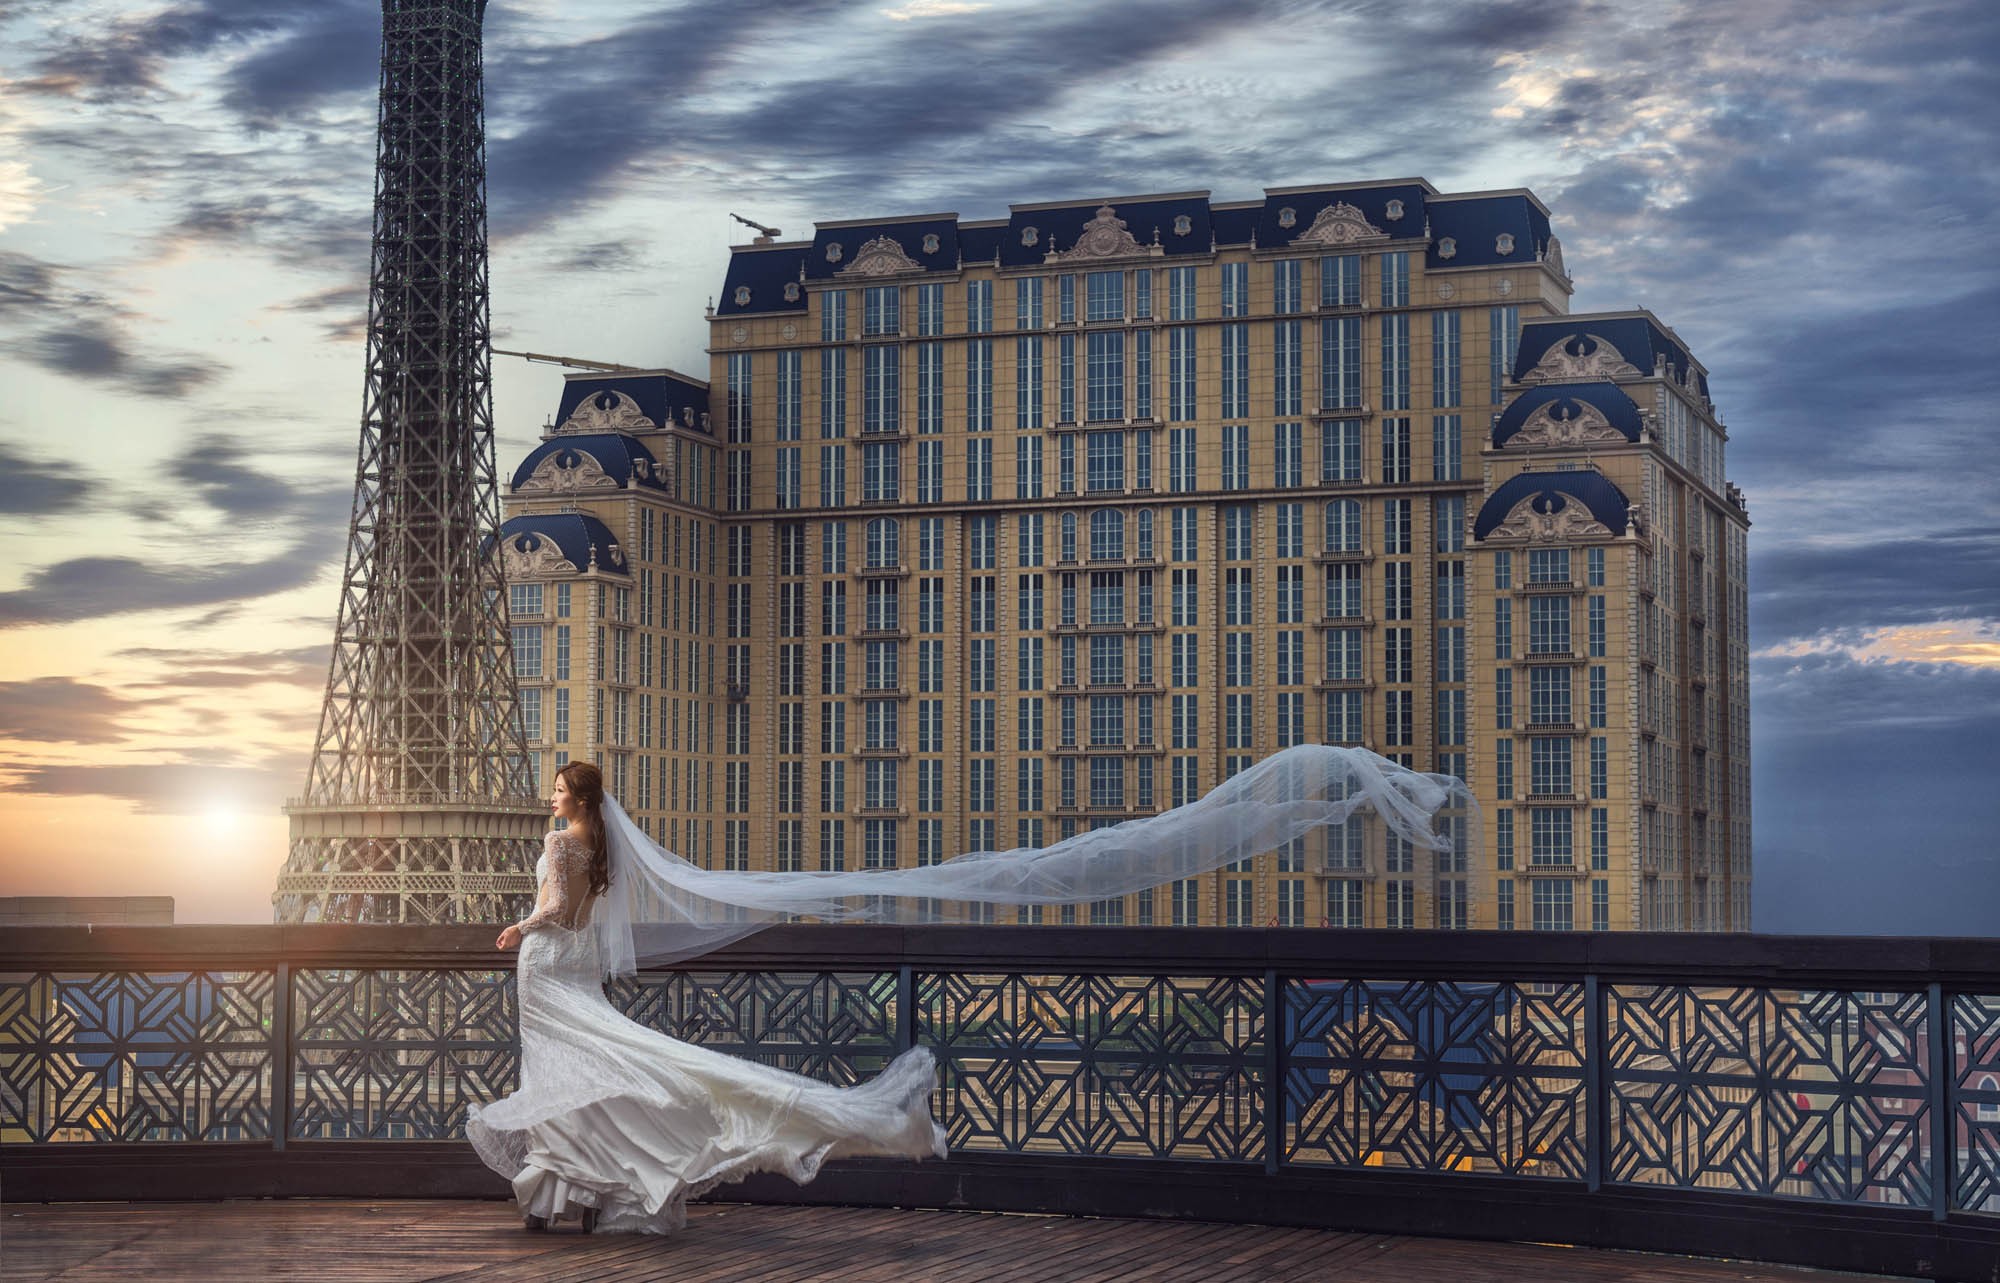 Bride with flowing veil next to Eiffel Tower, by CM Leung